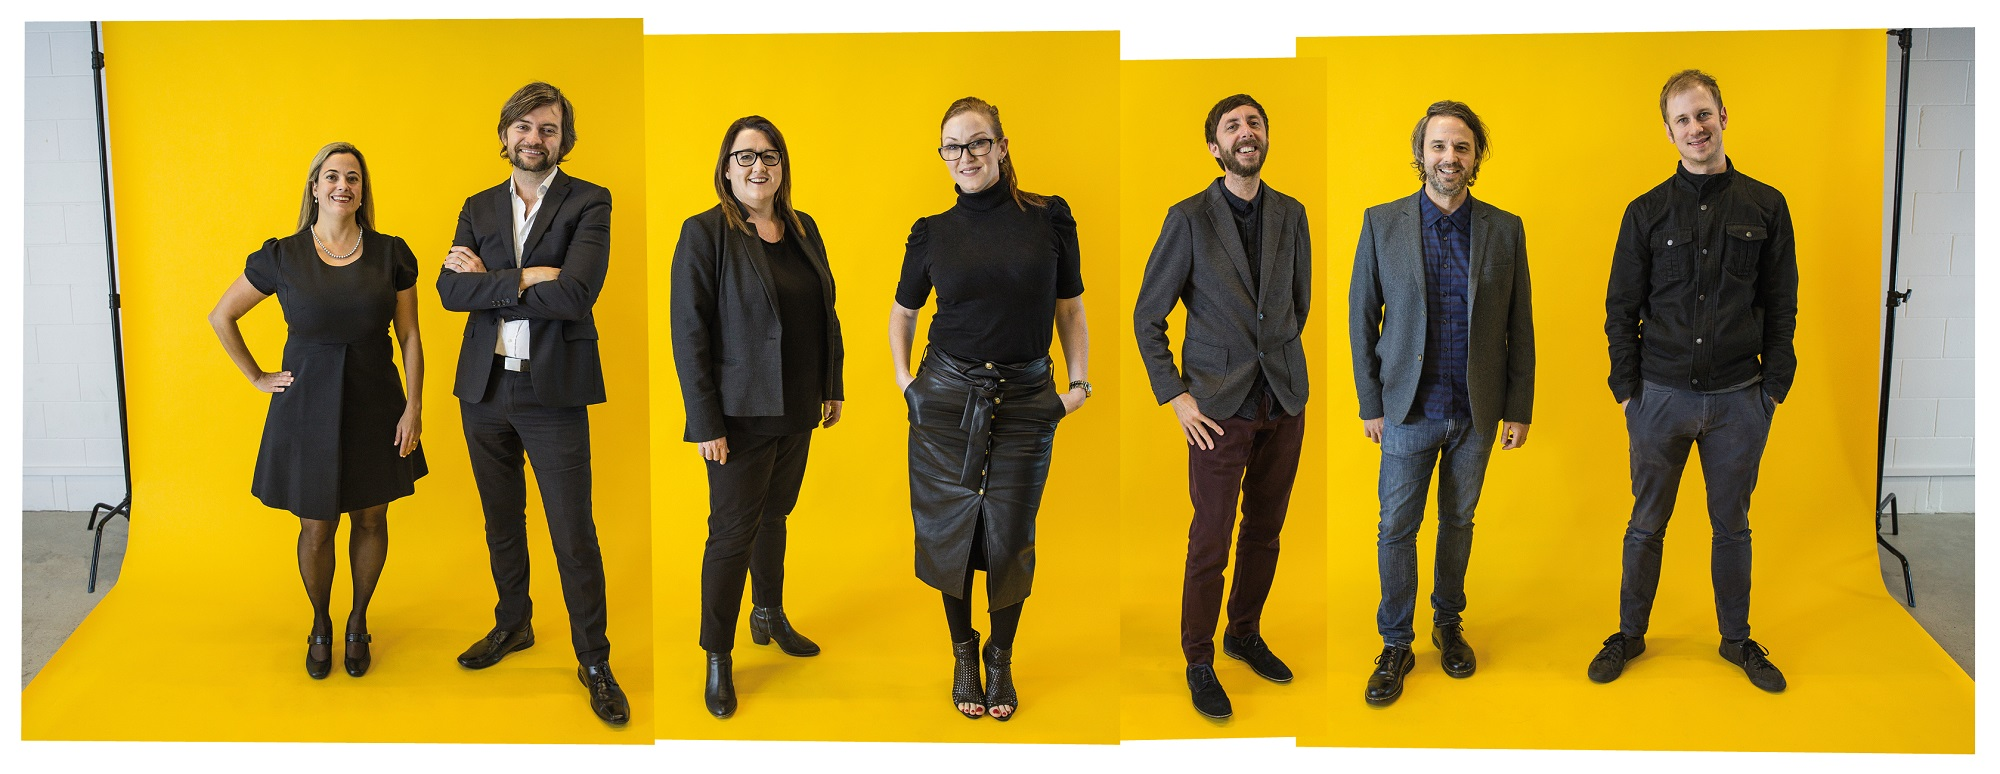 Khemistry's leadership team (Caroline Starecky, Andy Fyffe, Michelle Tungate, Priscilla Jeha, James Bracken, Lindsay Thompson, Phil Hagstrom)